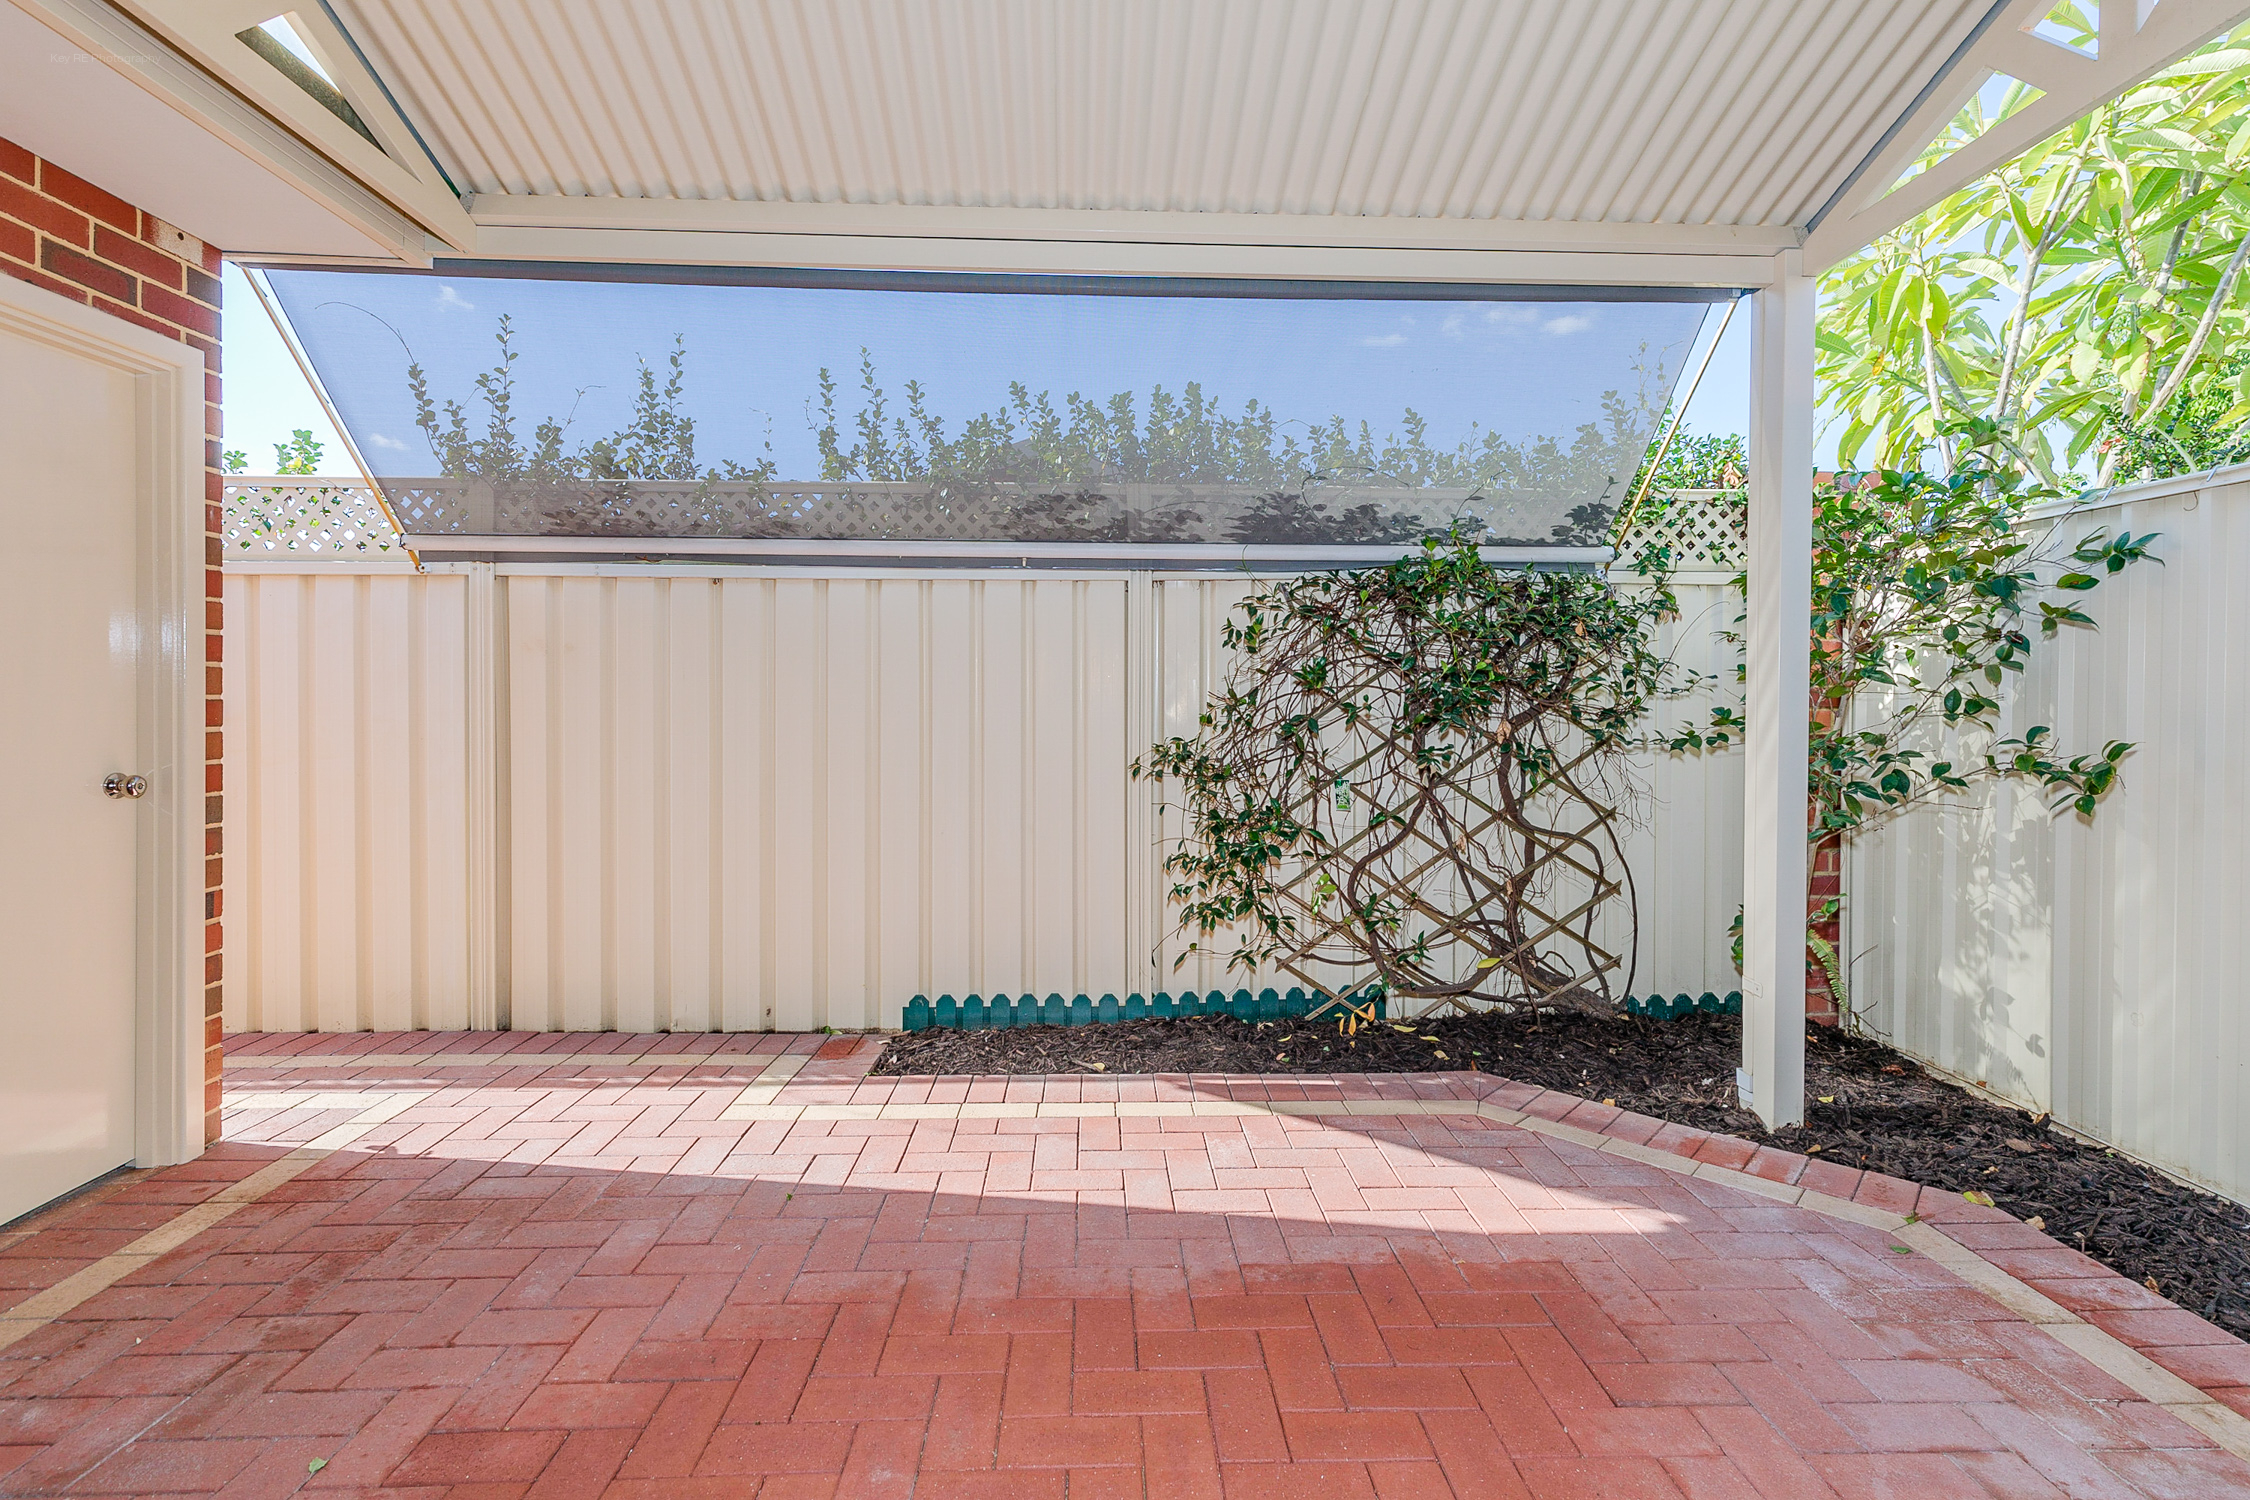 Property for sale in THORNLIE, 97 / 41 Geographe Way : Attree Real Estate